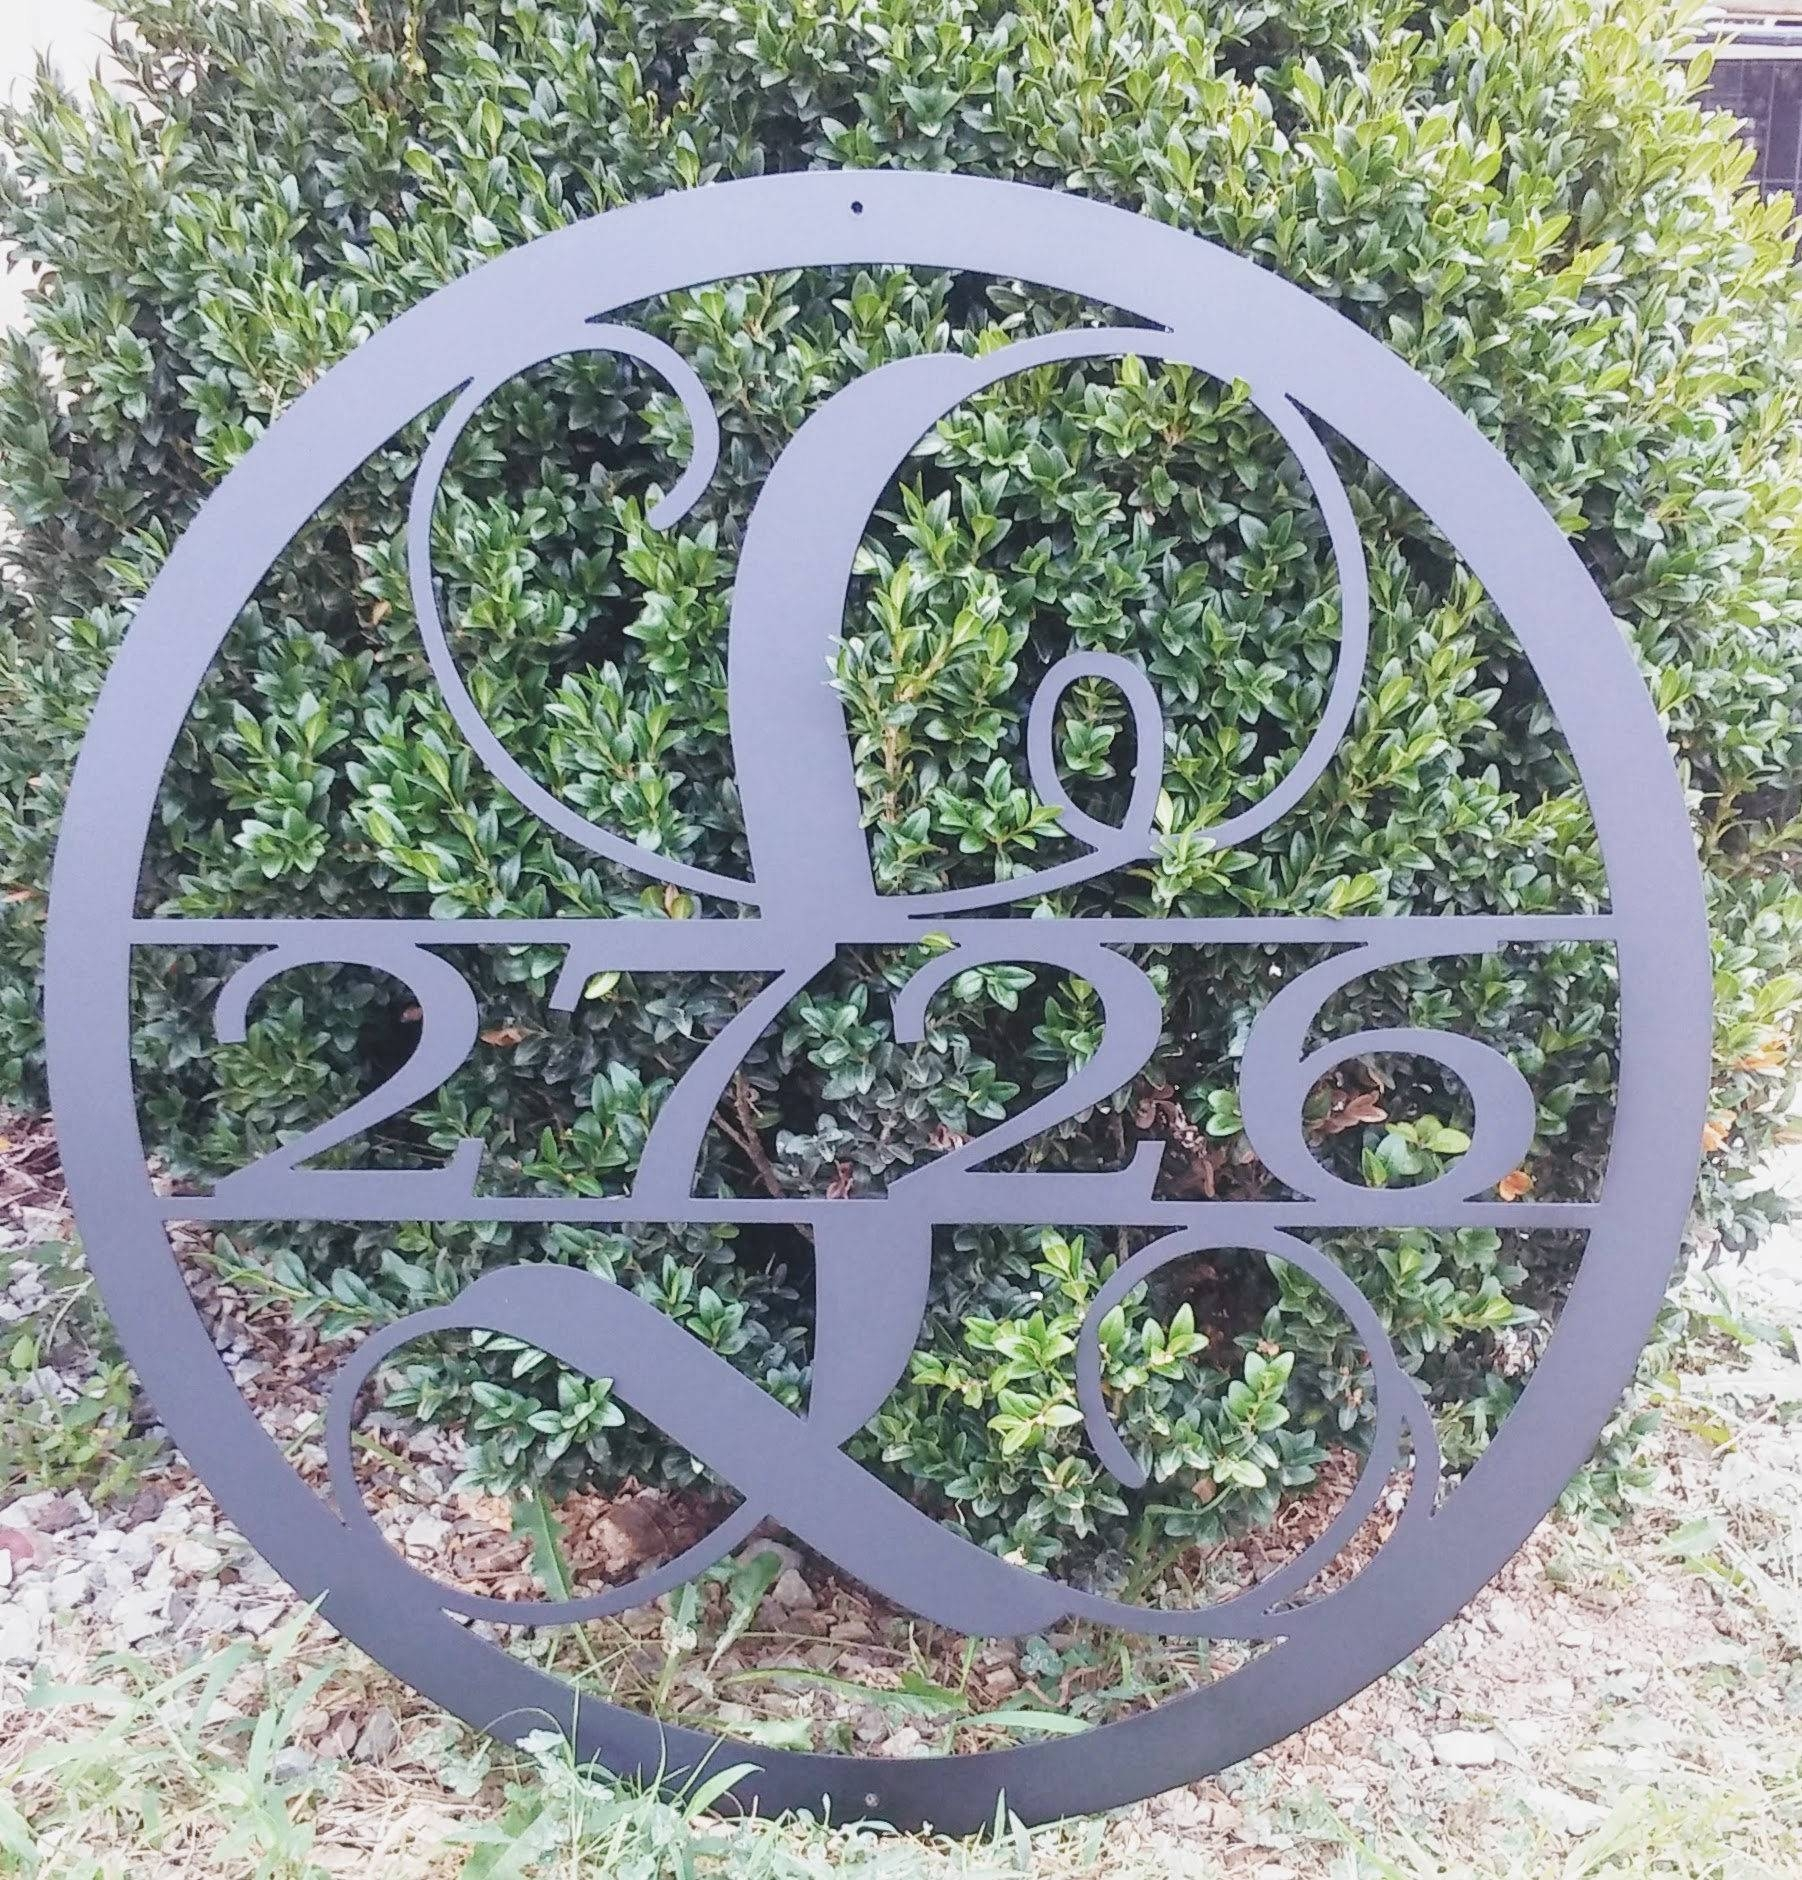 28 Inch Circle Monogram With House Number, Metal Wall Art, 28 Inch In Most Up To Date Monogram Metal Wall Art (View 13 of 20)